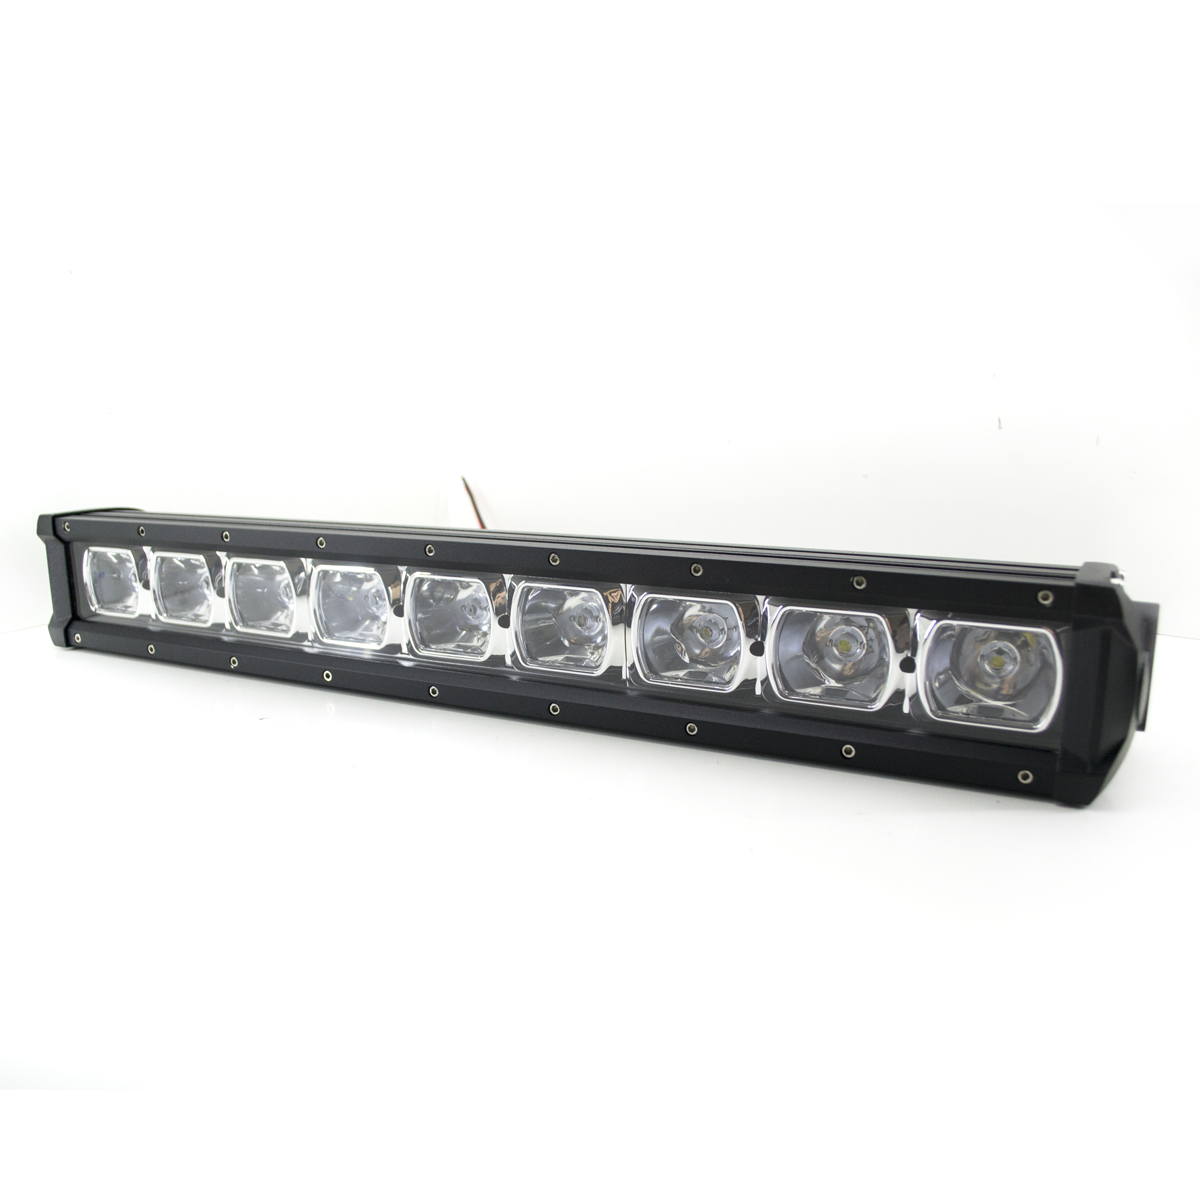 LED BAR CREE 550mm 90W 8800 Lm 10W F-9790 Square, фото 1